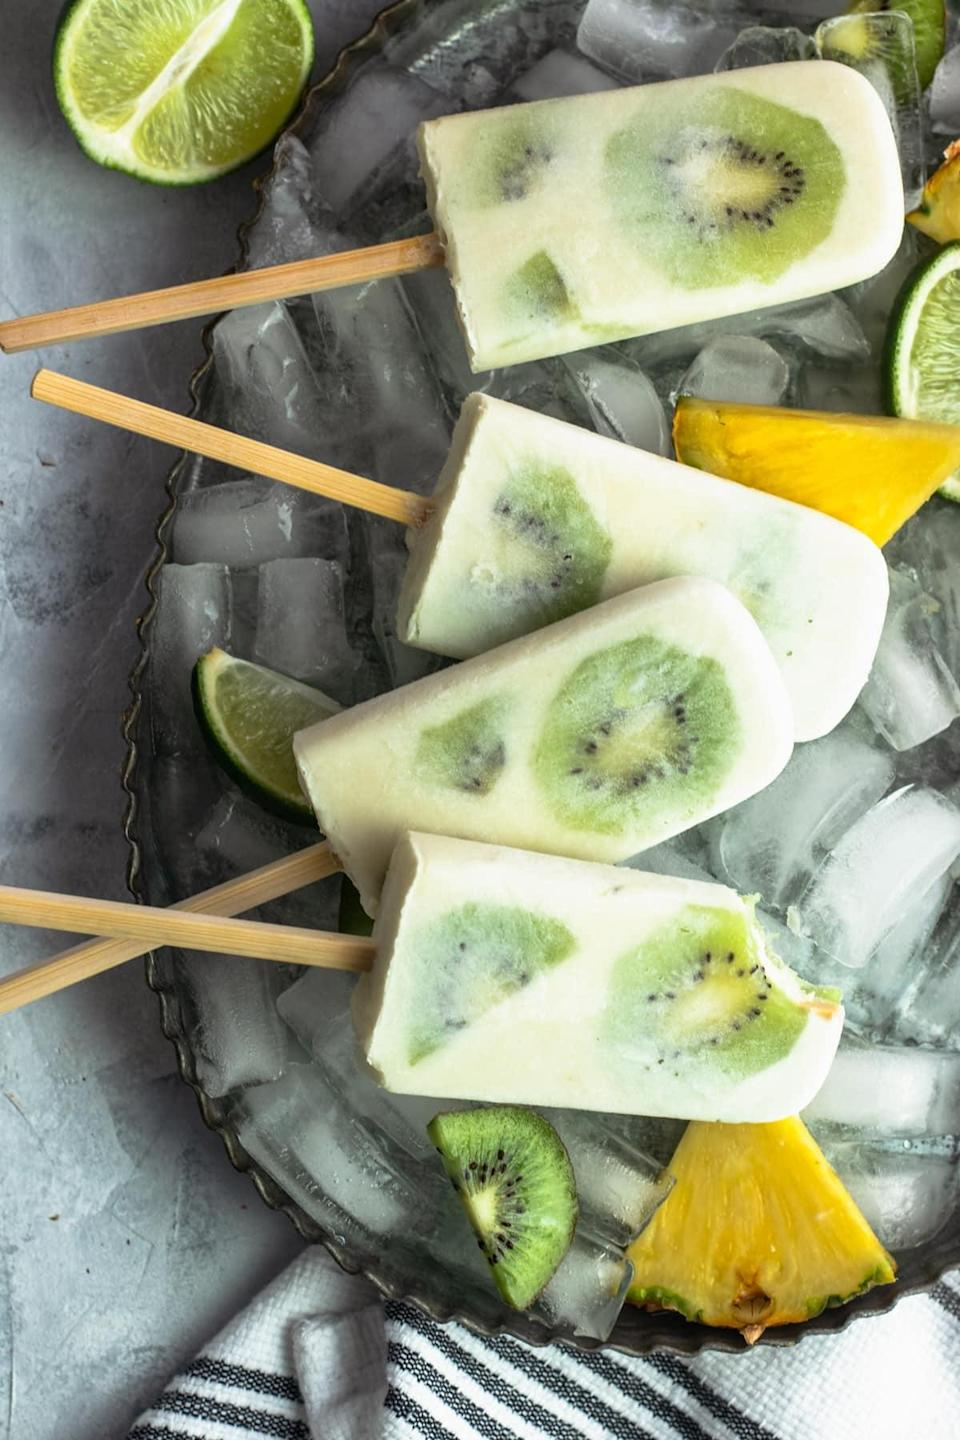 """<p>Pineapple and lime juice, coconut cream, bananas, and kiwis team up to bring you the most mouthwatering frozen treat of all: tropical paradise popsicles. Just one lick will transport you to a relaxing oasis far, far away.</p> <p><strong>Get the recipe</strong>: <a href=""""https://sugarandcloth.com/whole30-tropical-paradise-popsicles-recipe/"""" class=""""link rapid-noclick-resp"""" rel=""""nofollow noopener"""" target=""""_blank"""" data-ylk=""""slk:tropical paradise popsicles"""">tropical paradise popsicles</a></p>"""